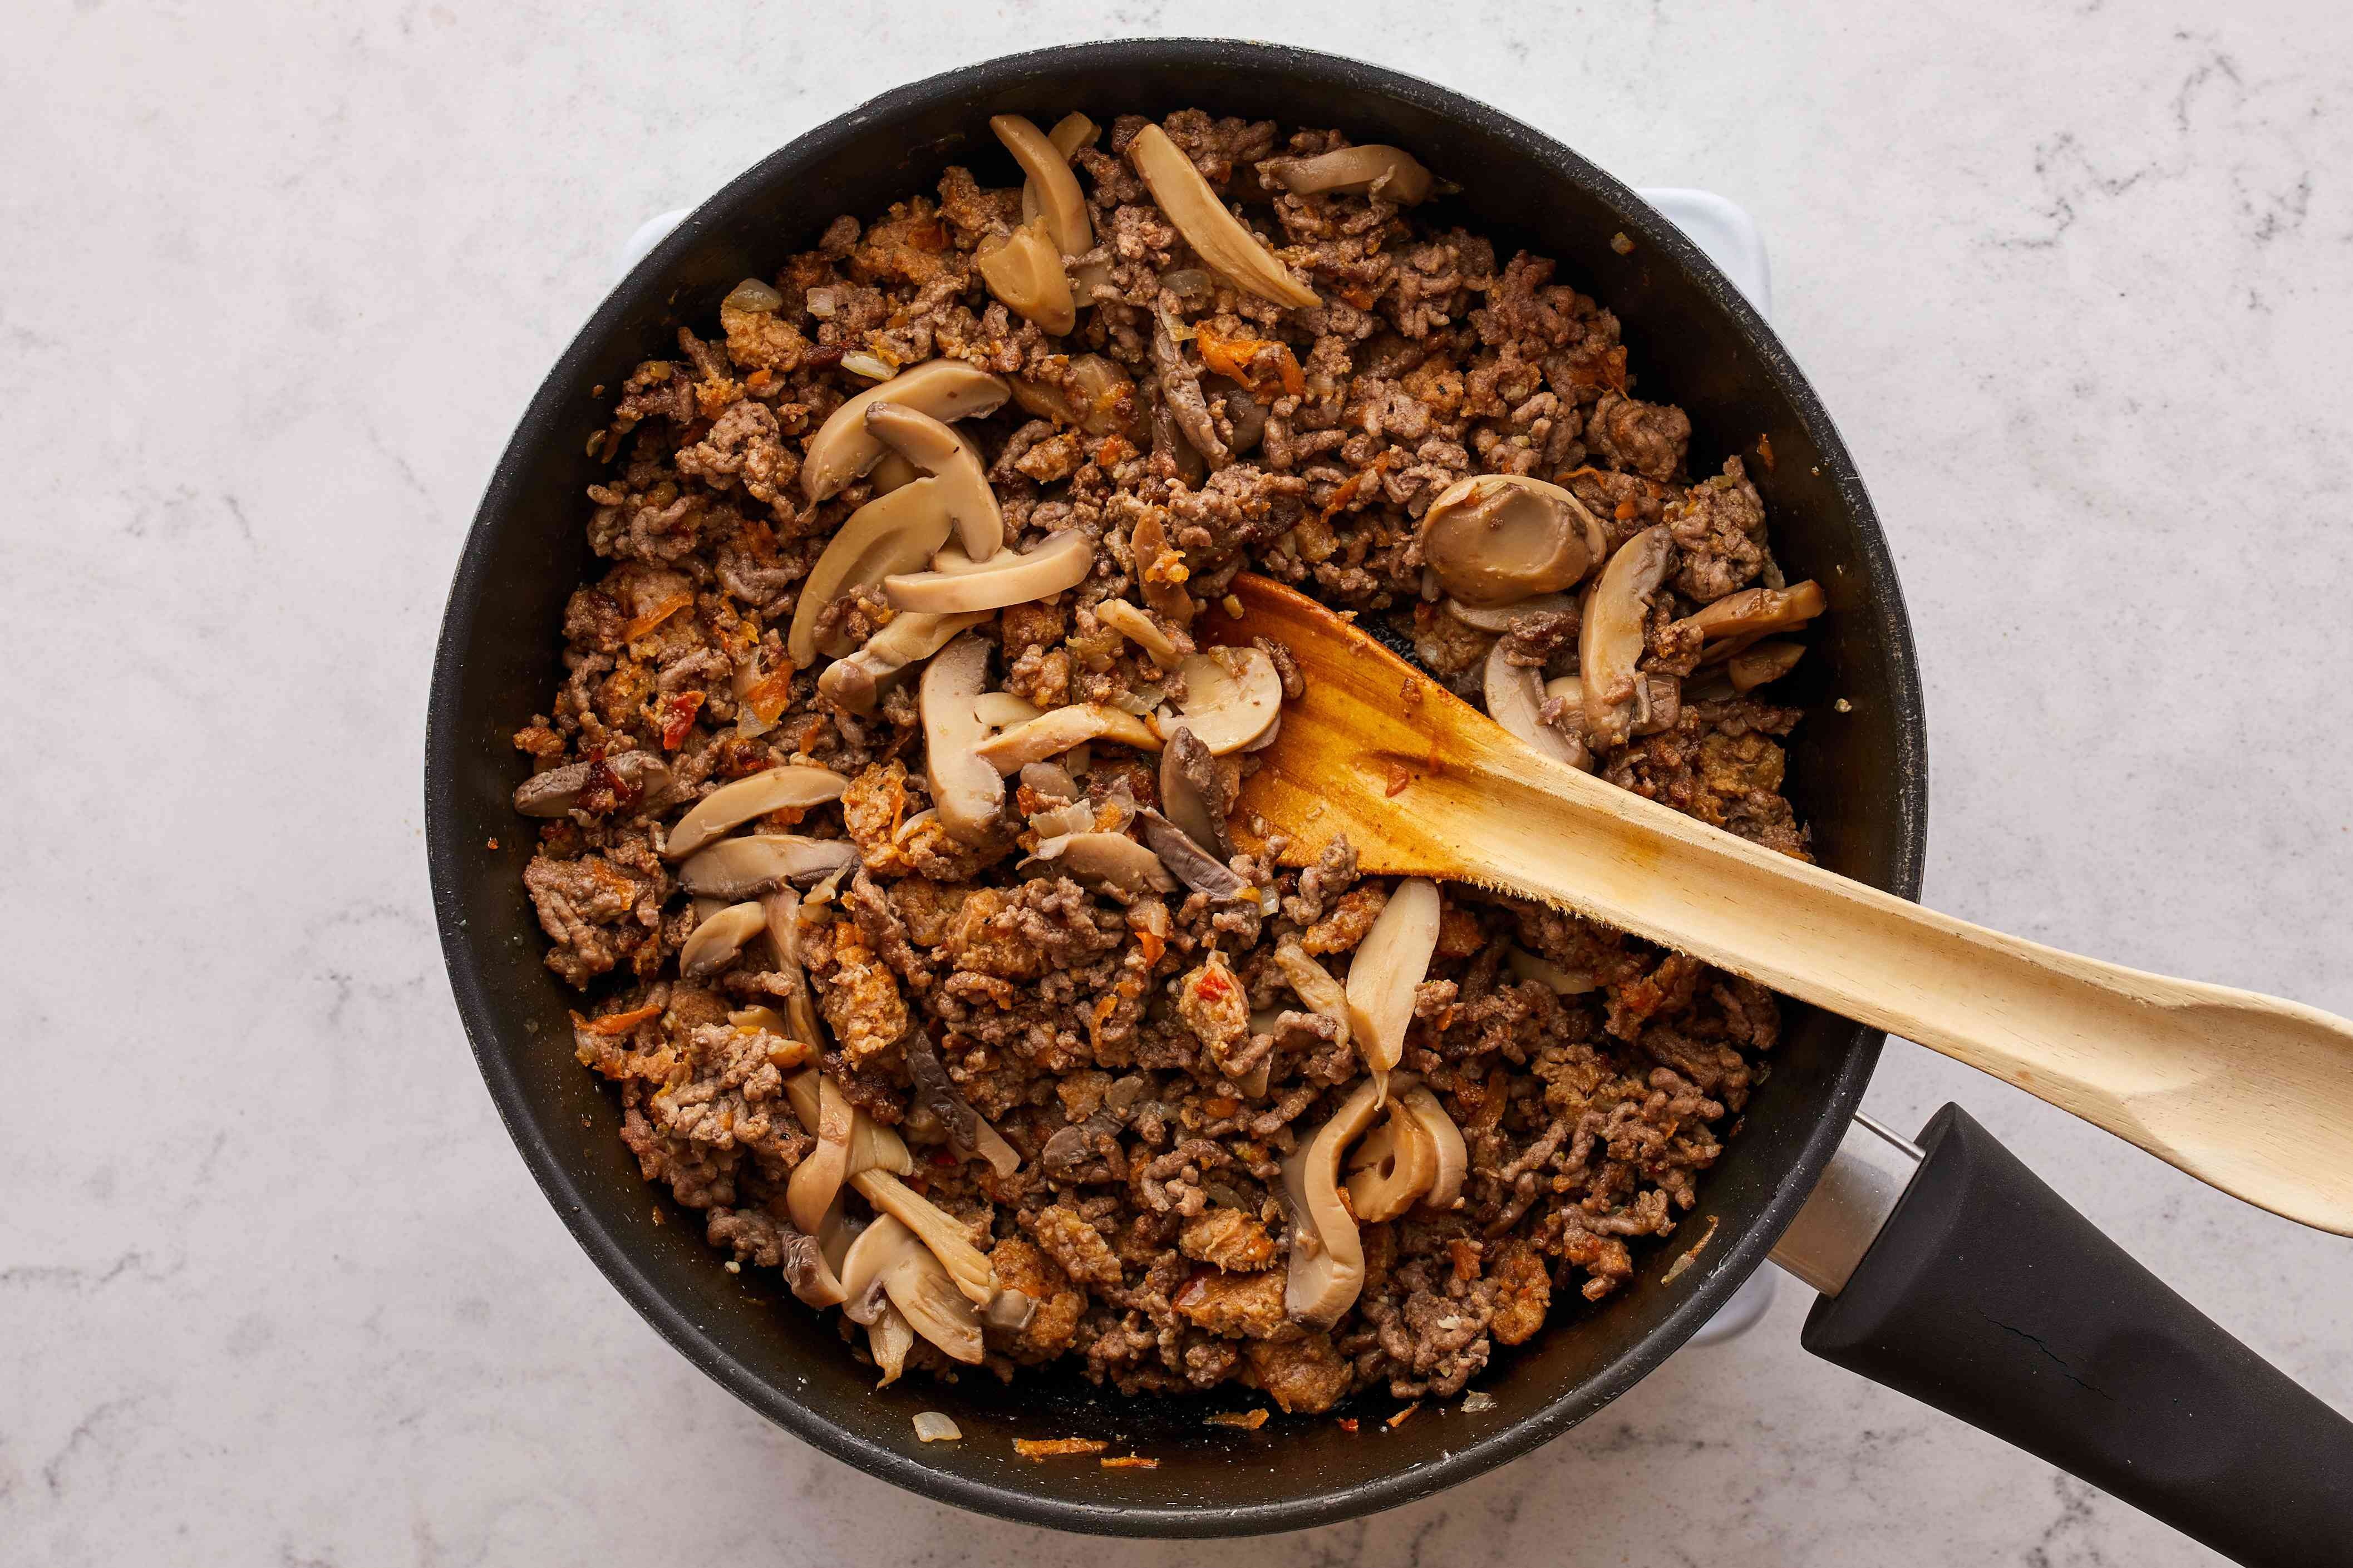 add mushrooms to the beef mixture in the pan